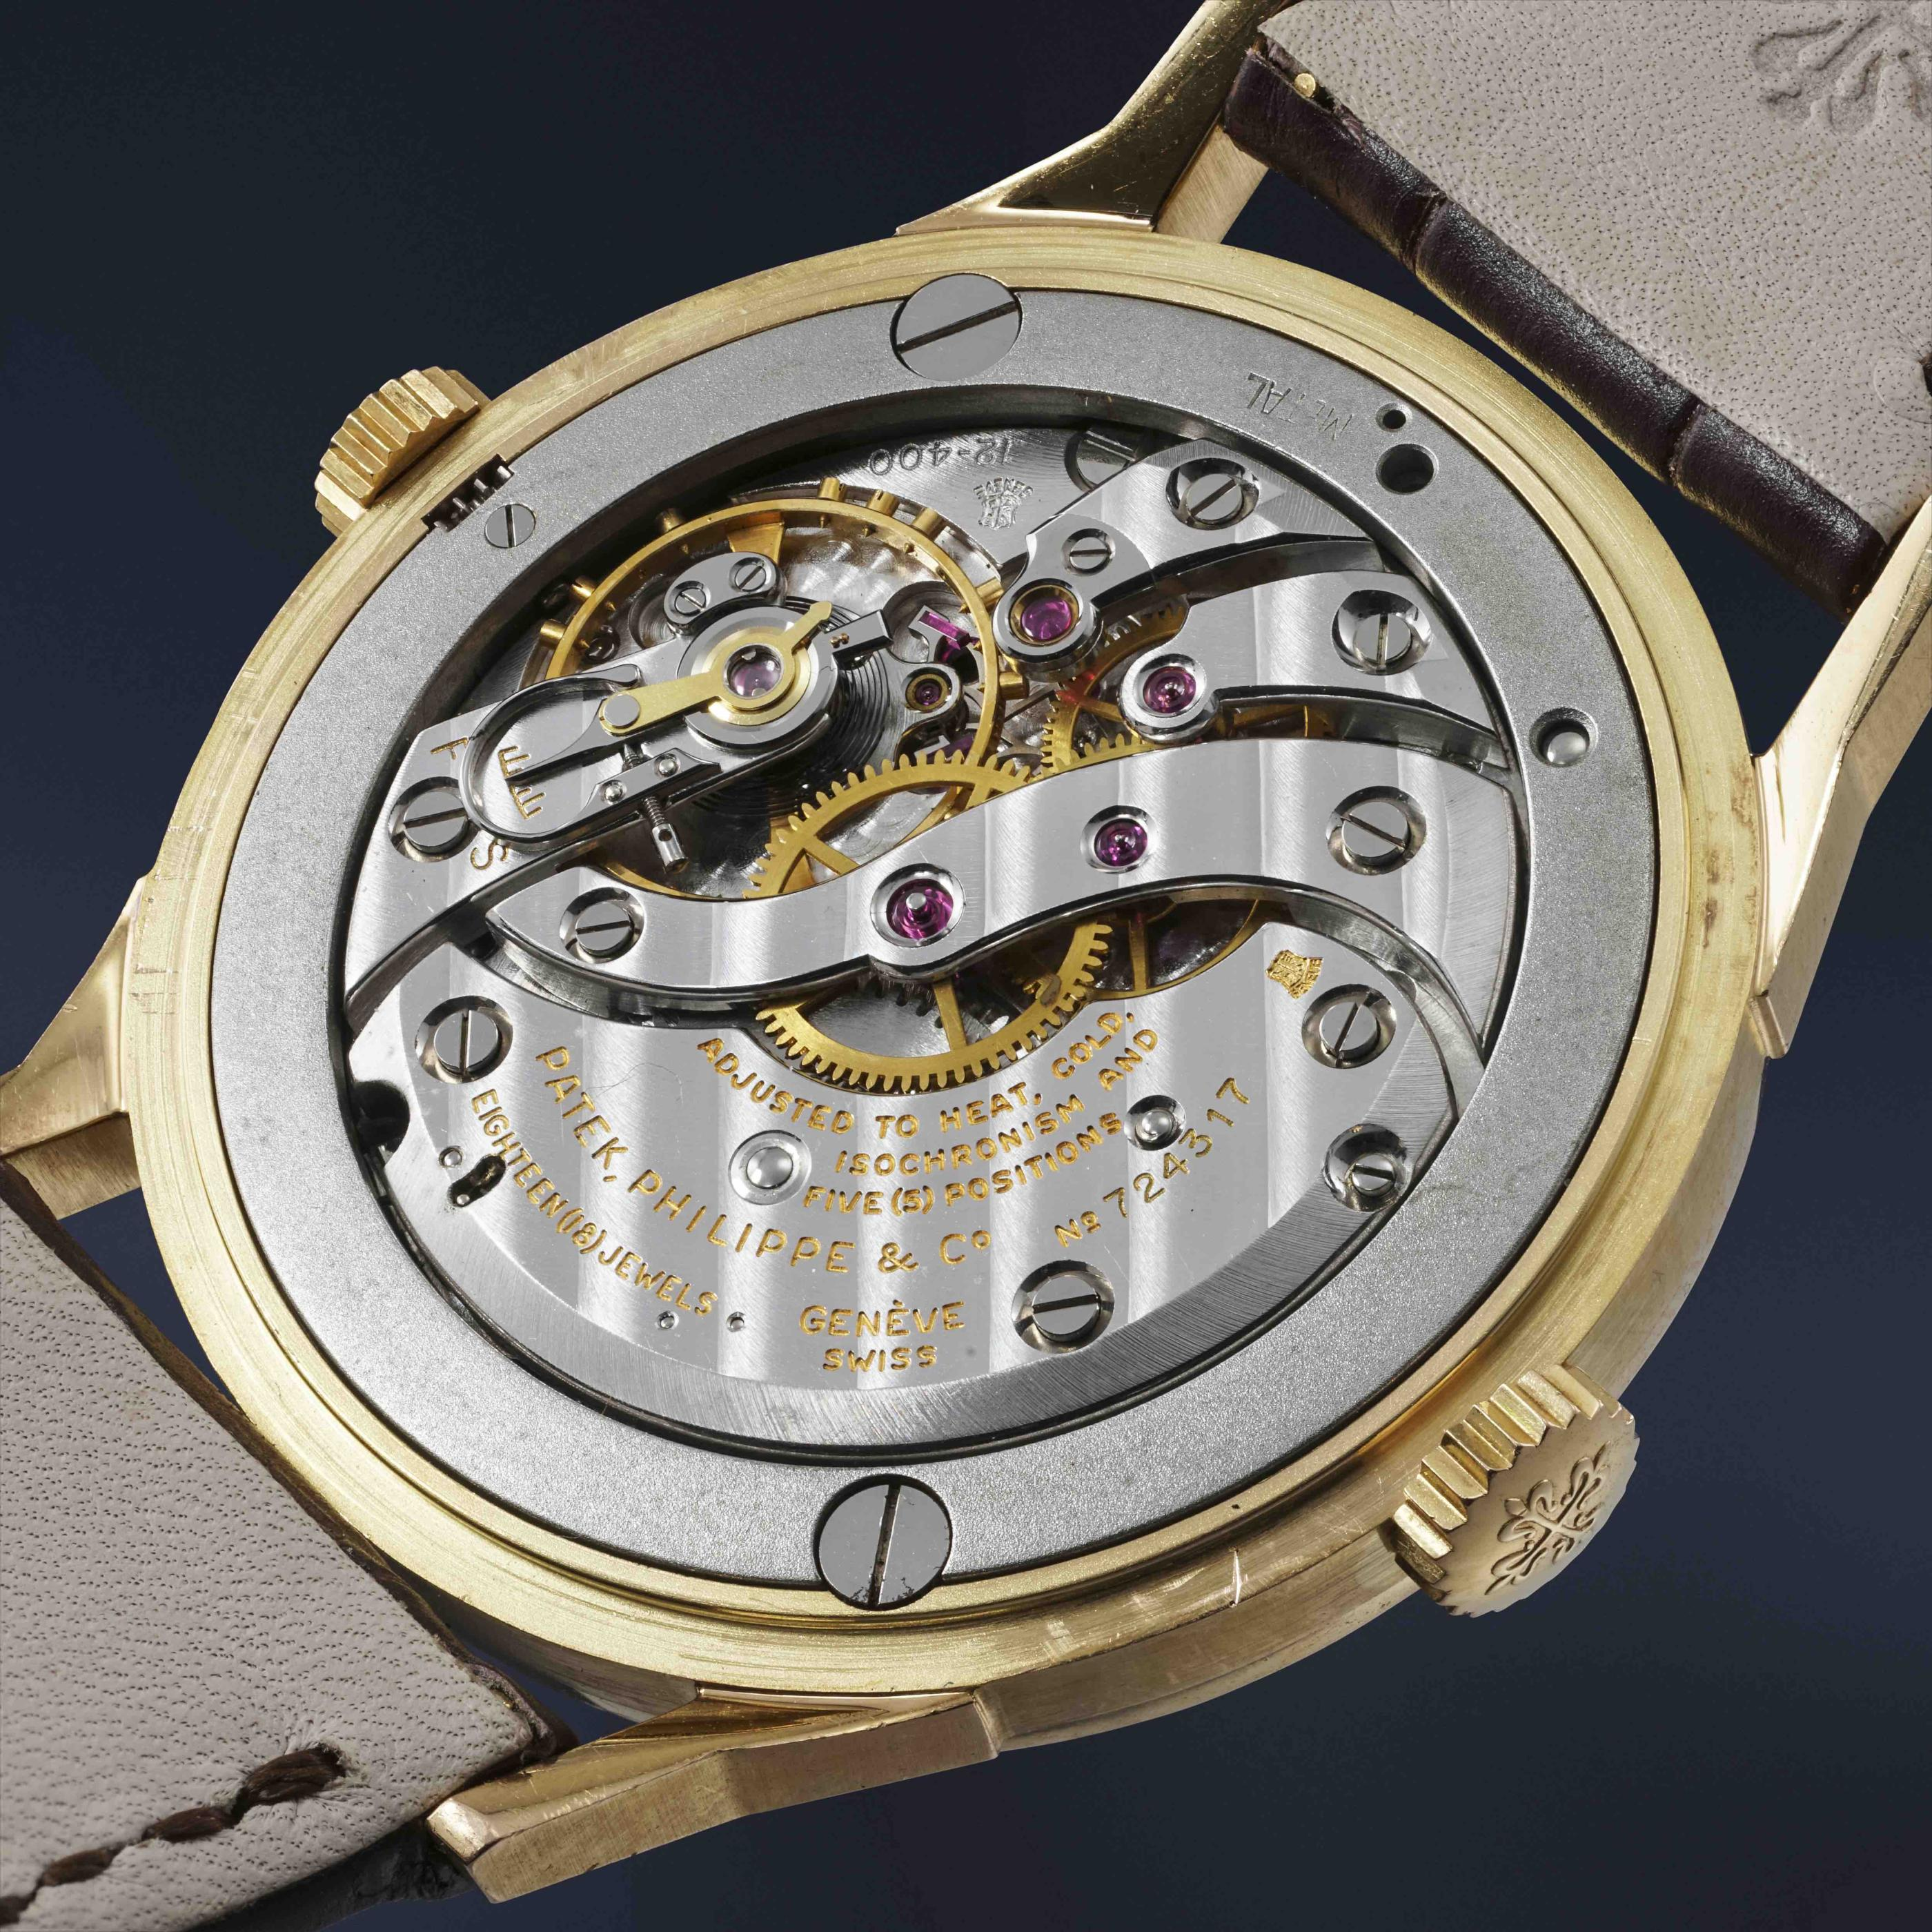 An extremely rare Patek Philippe to be auctioned in Geneva